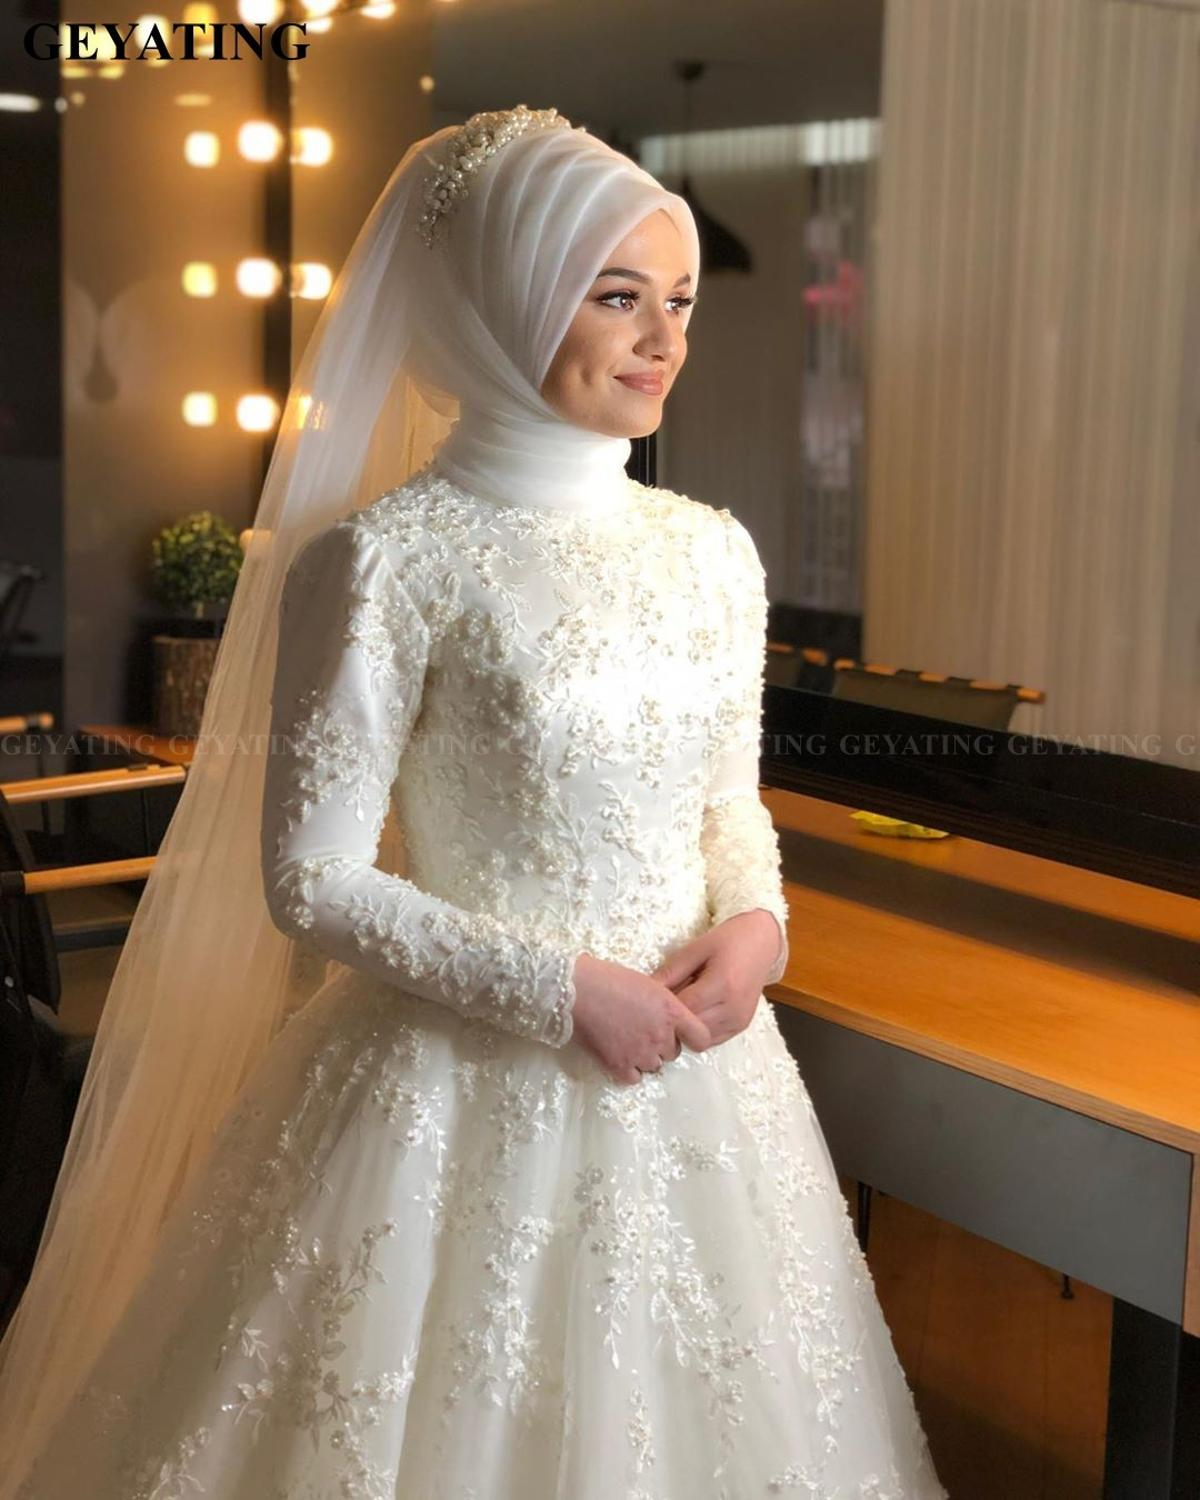 Image 4 - 2020 Elegant Off White Islamic Muslim Wedding Dress with Hijab Long Sleeves High Neck Pearls Lace Arabic Bridal Gowns in Dubai-in Wedding Dresses from Weddings & Events